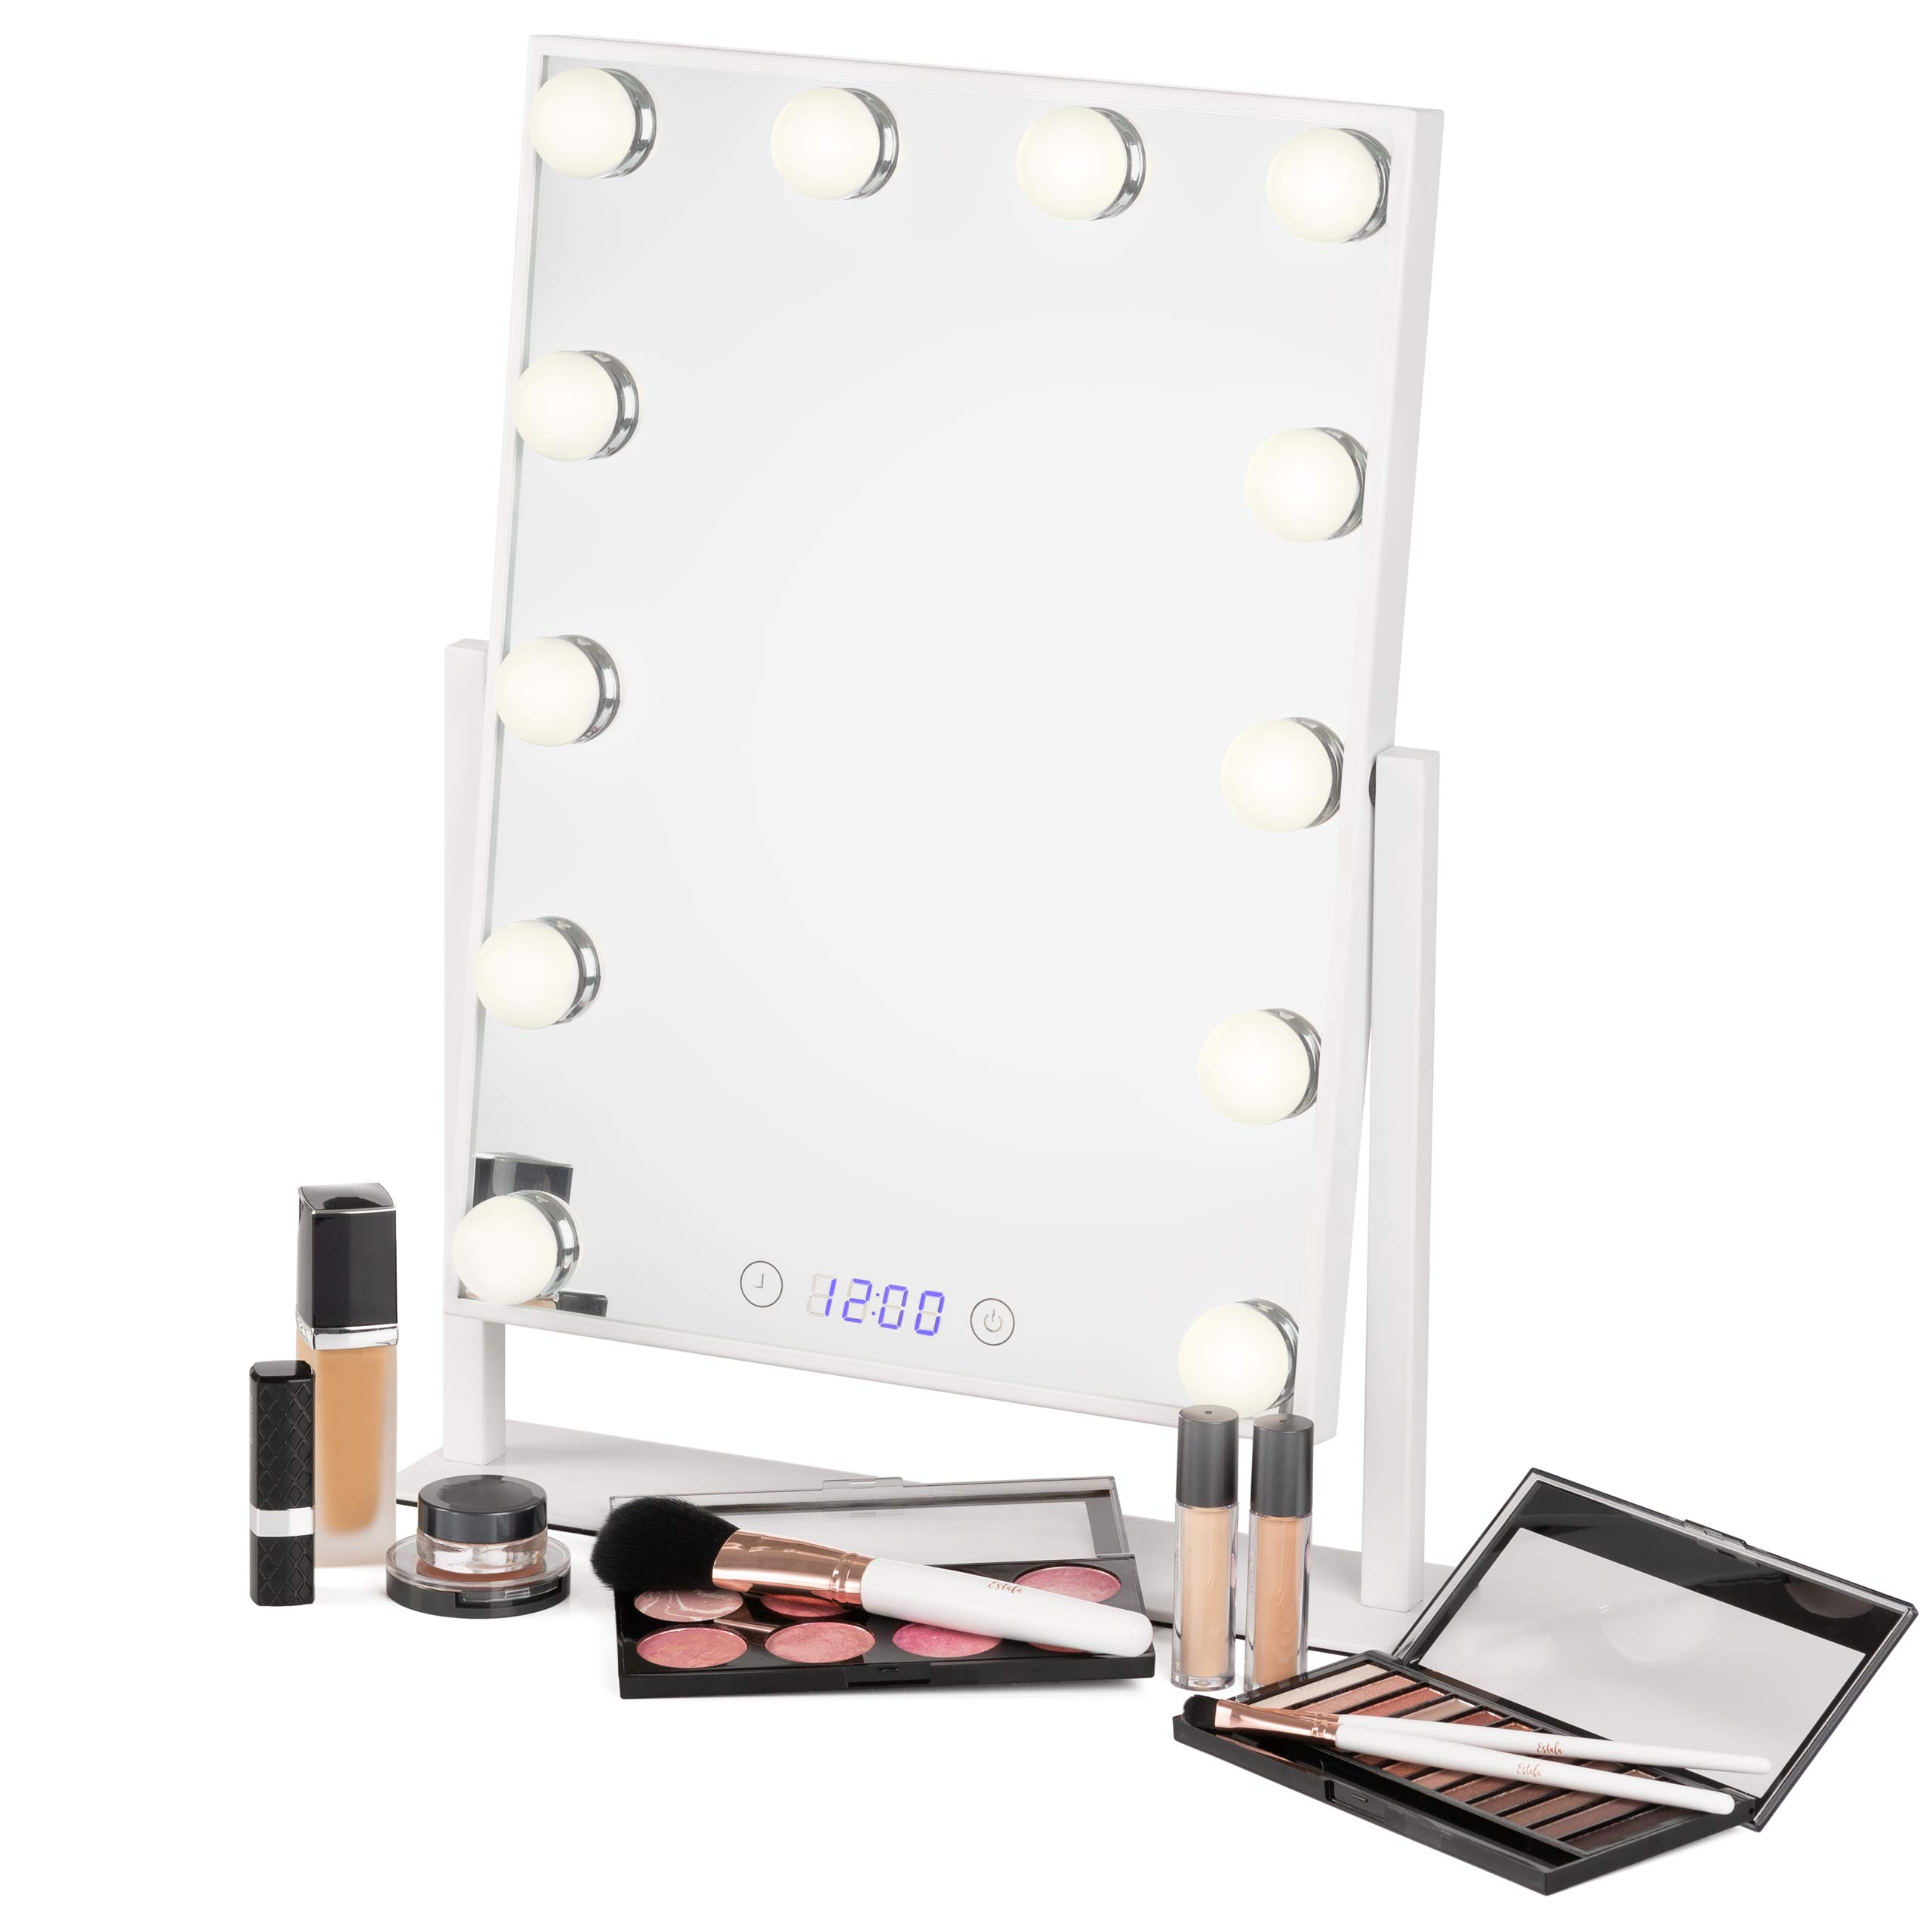 Vanity Mirror with Lights - Professional Makeup Mirror & Lighted Vanity Makeup Table Set with Smart Touch Adjustable LED Lights, White Hollywood Vanity Mirror, Digital Clock & Steel Frame by Estala